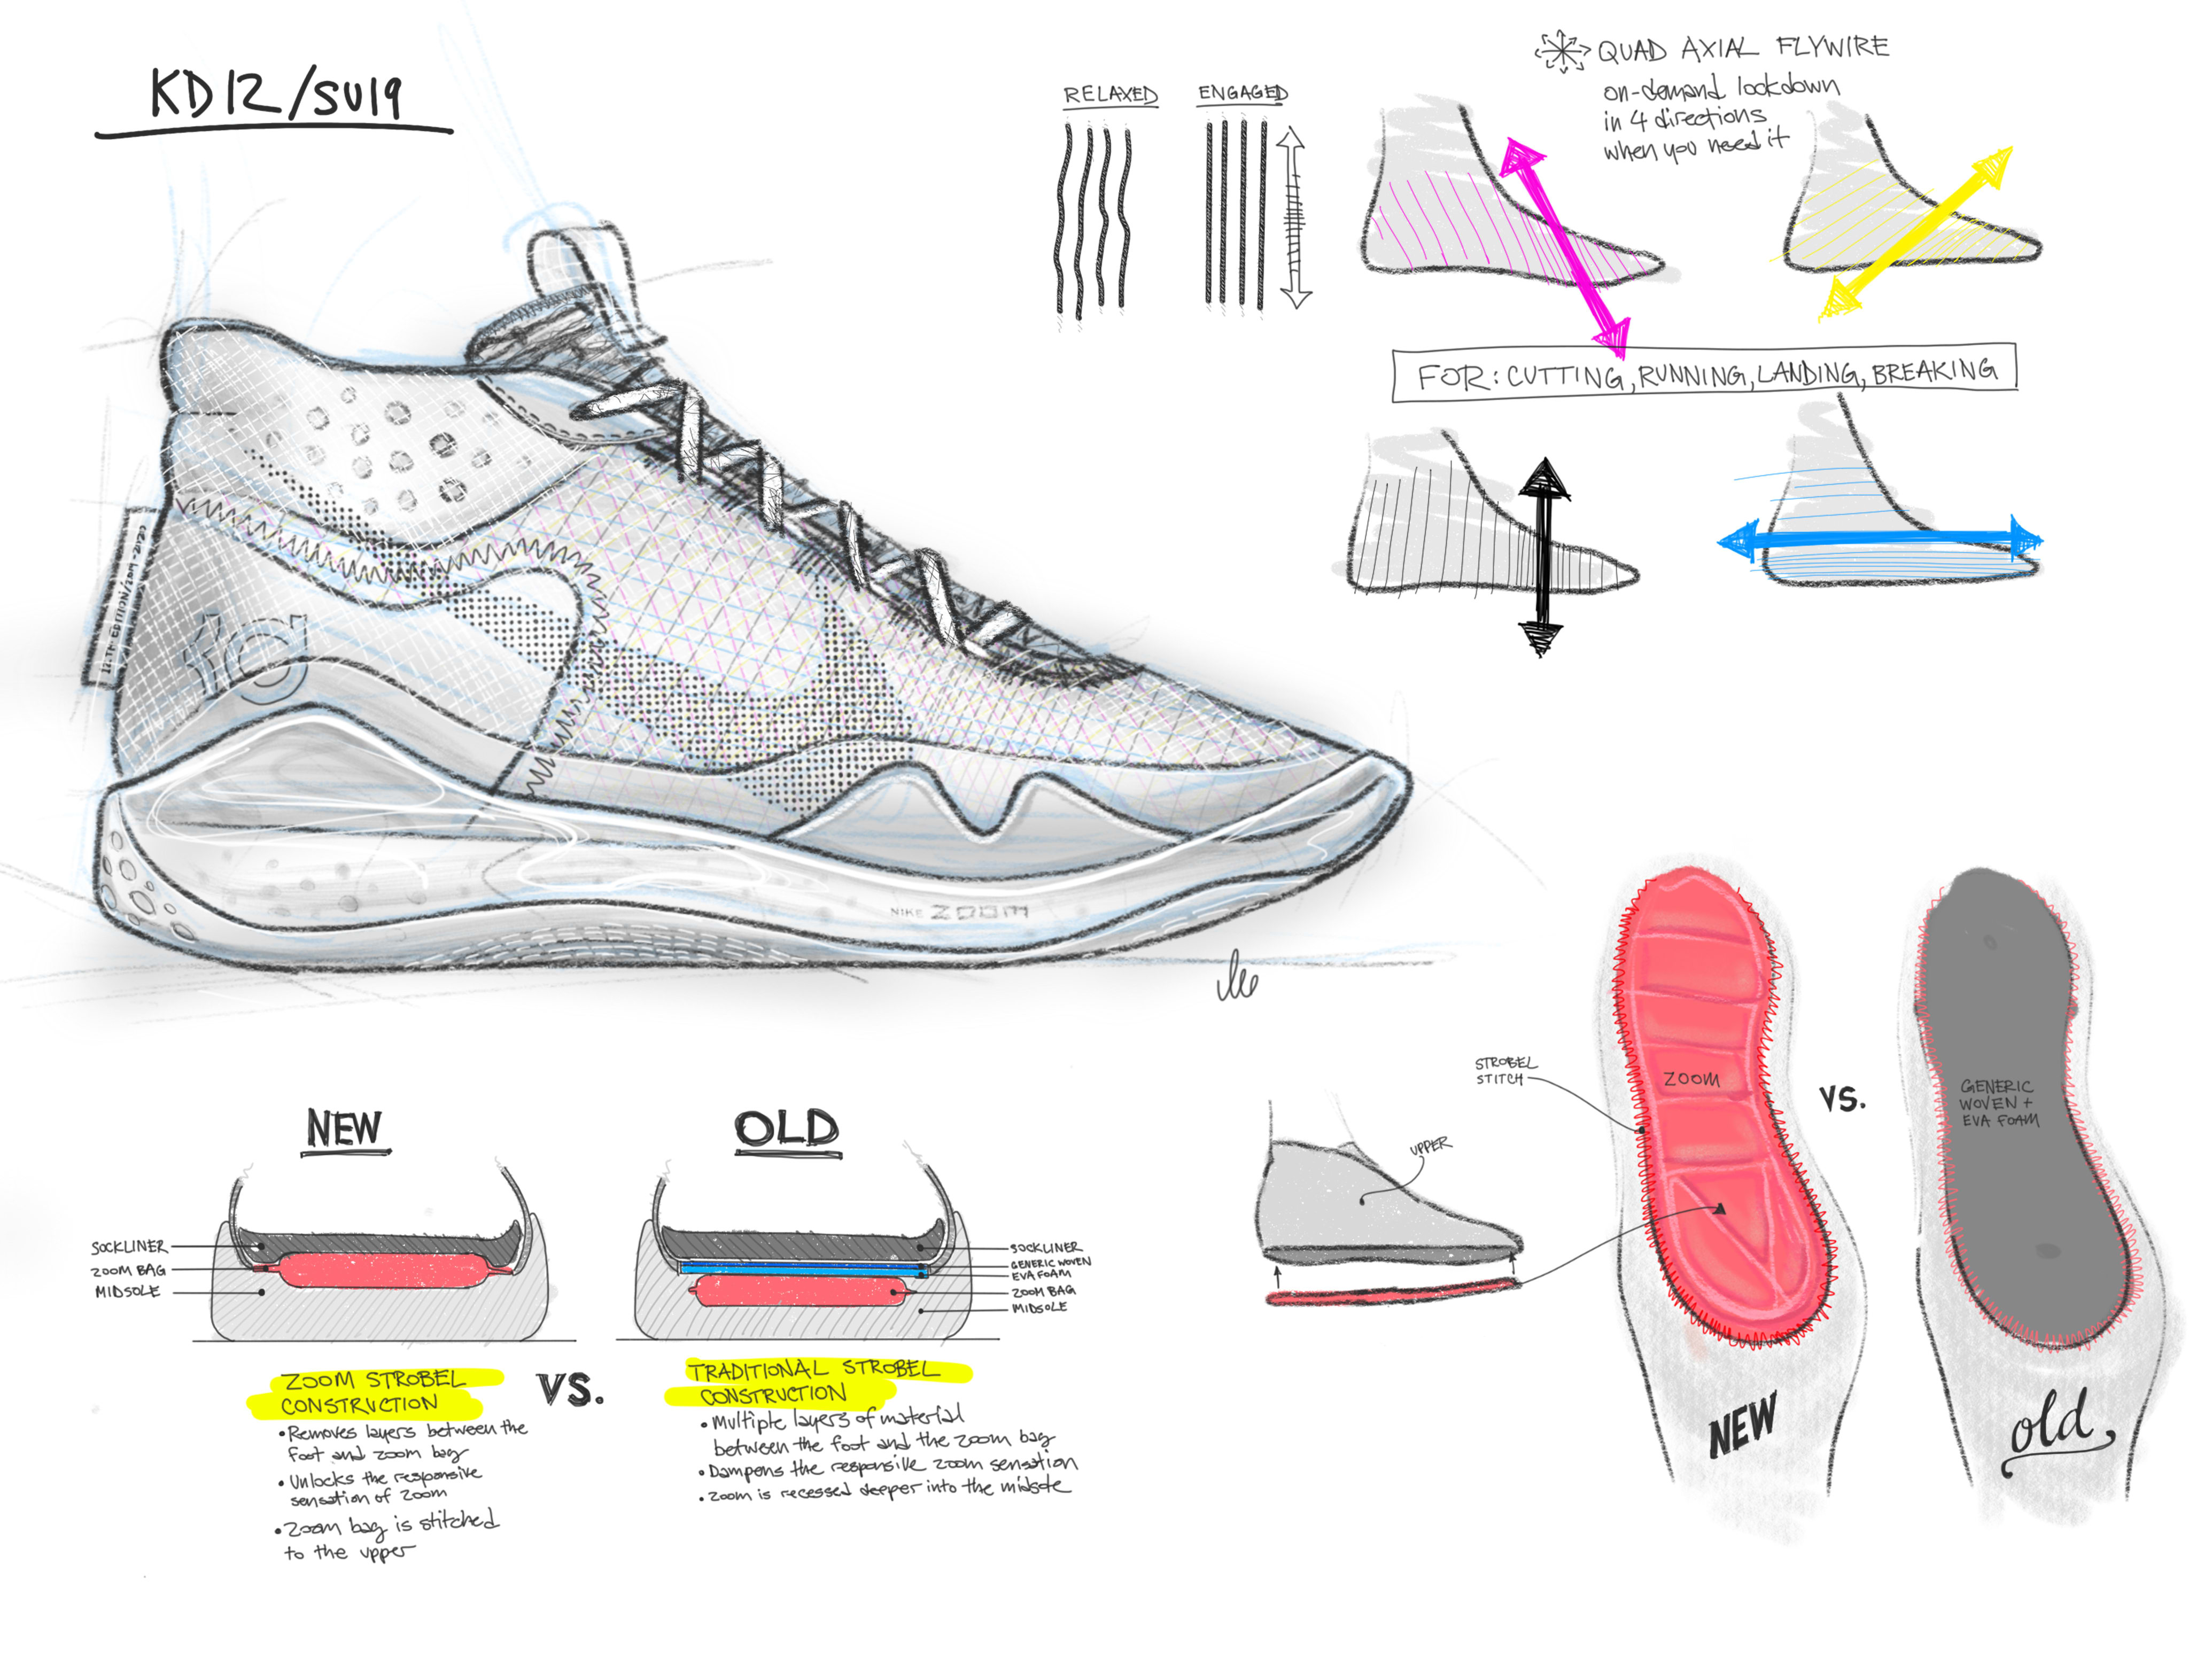 Nike Zoom KD 12 Leo Chang Sketch 2